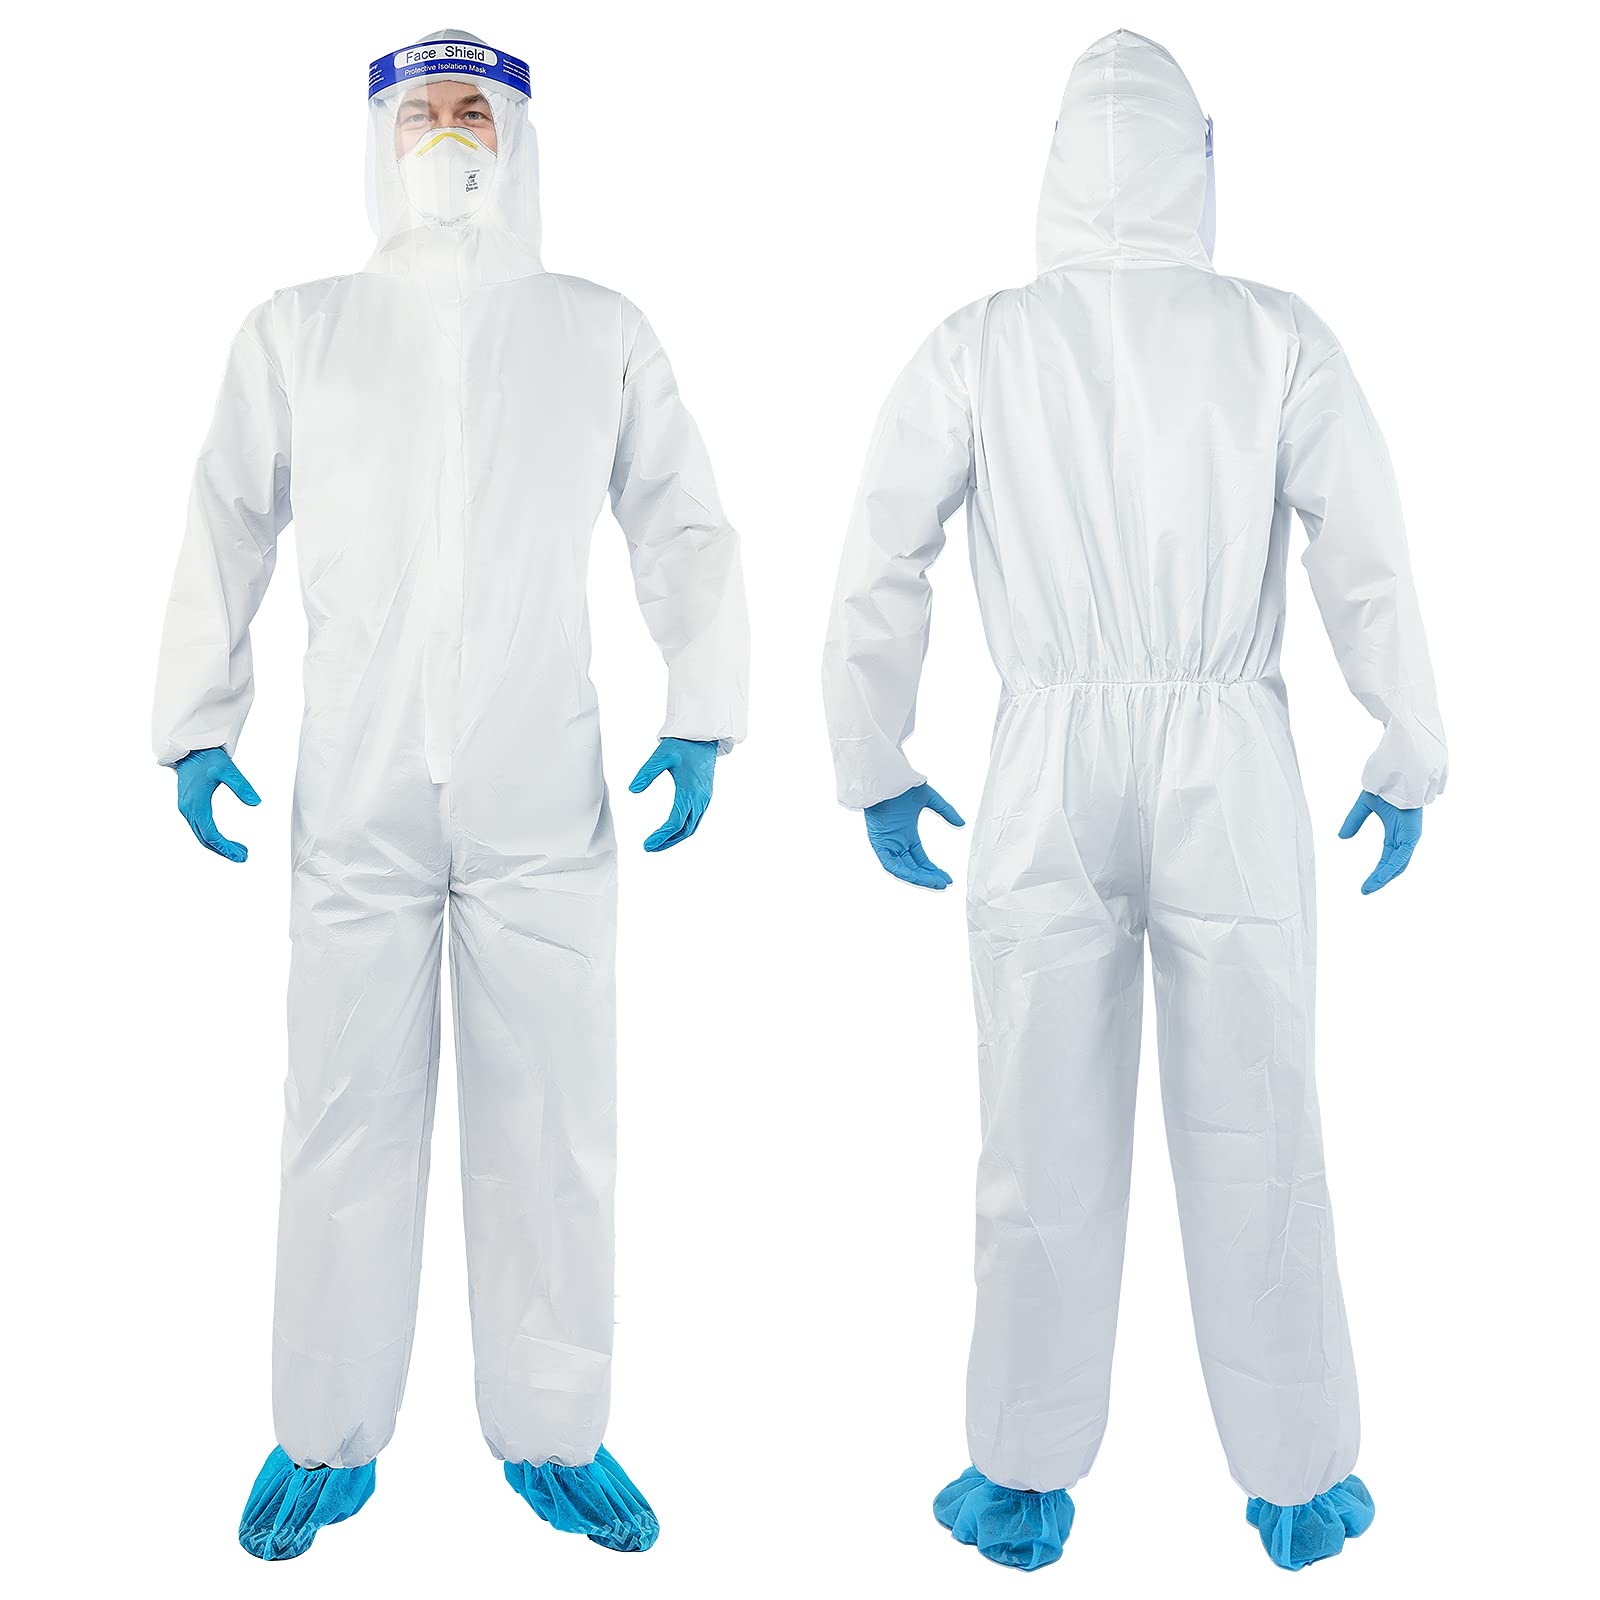 YIBER Disposable Protective Coverall Hazmat Suit, Heavy Duty Painters Coveralls, Made of SF Material, Excellent air permeability and water repellency - 1 PCS/PACK (S, White)